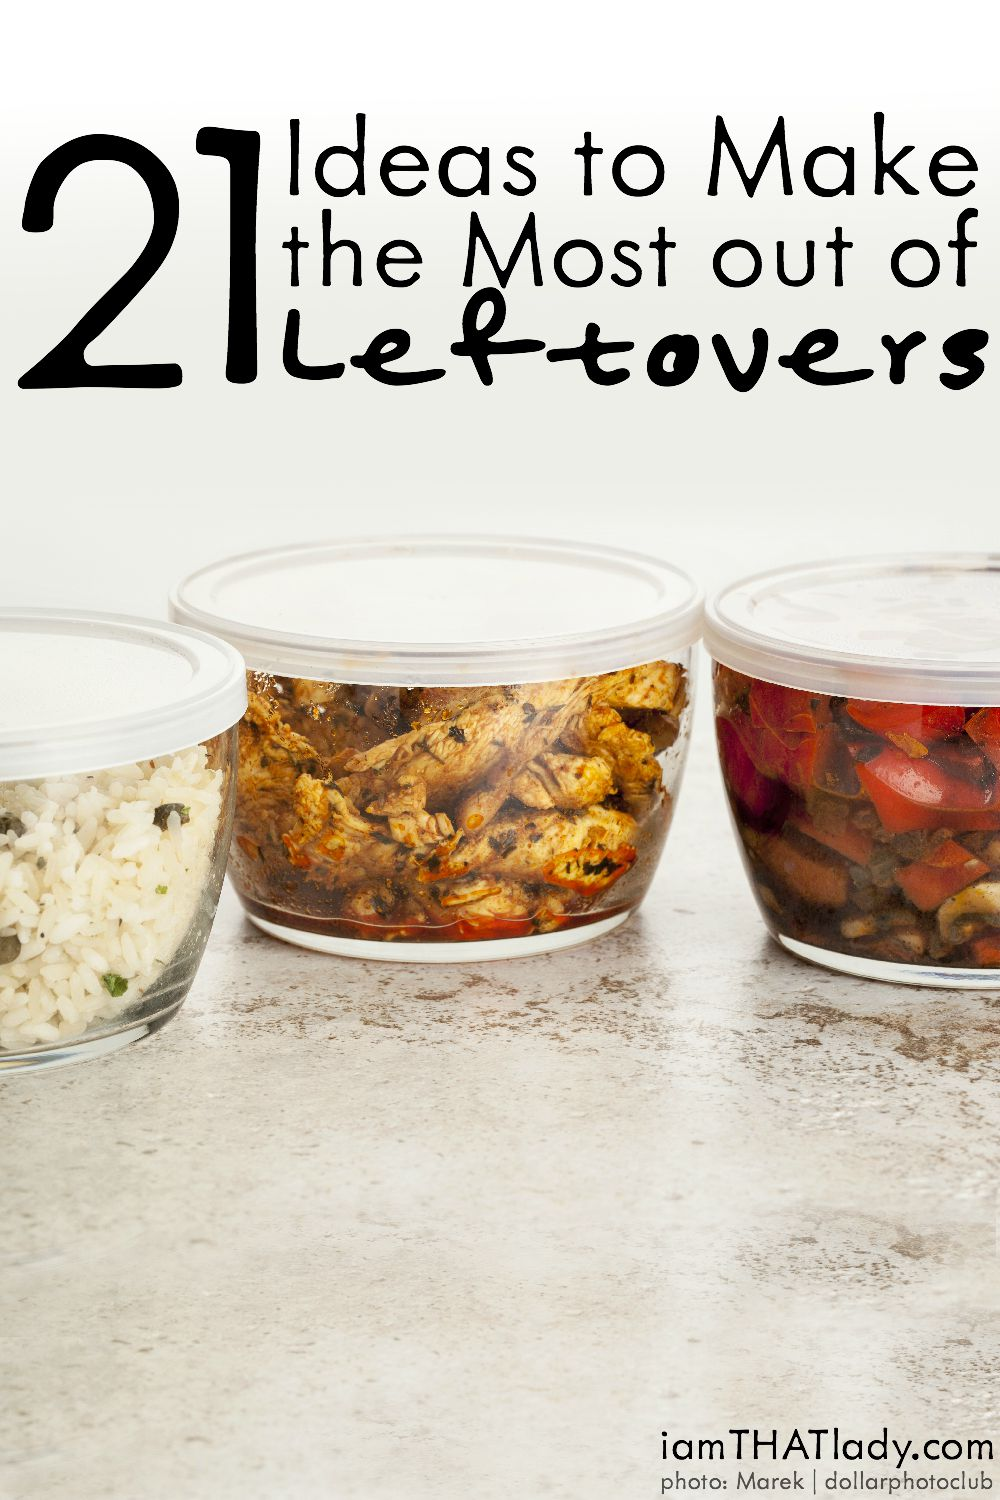 Don't throw away that leftover food! Here are 21 Ideas to Make the Most out of Leftovers!